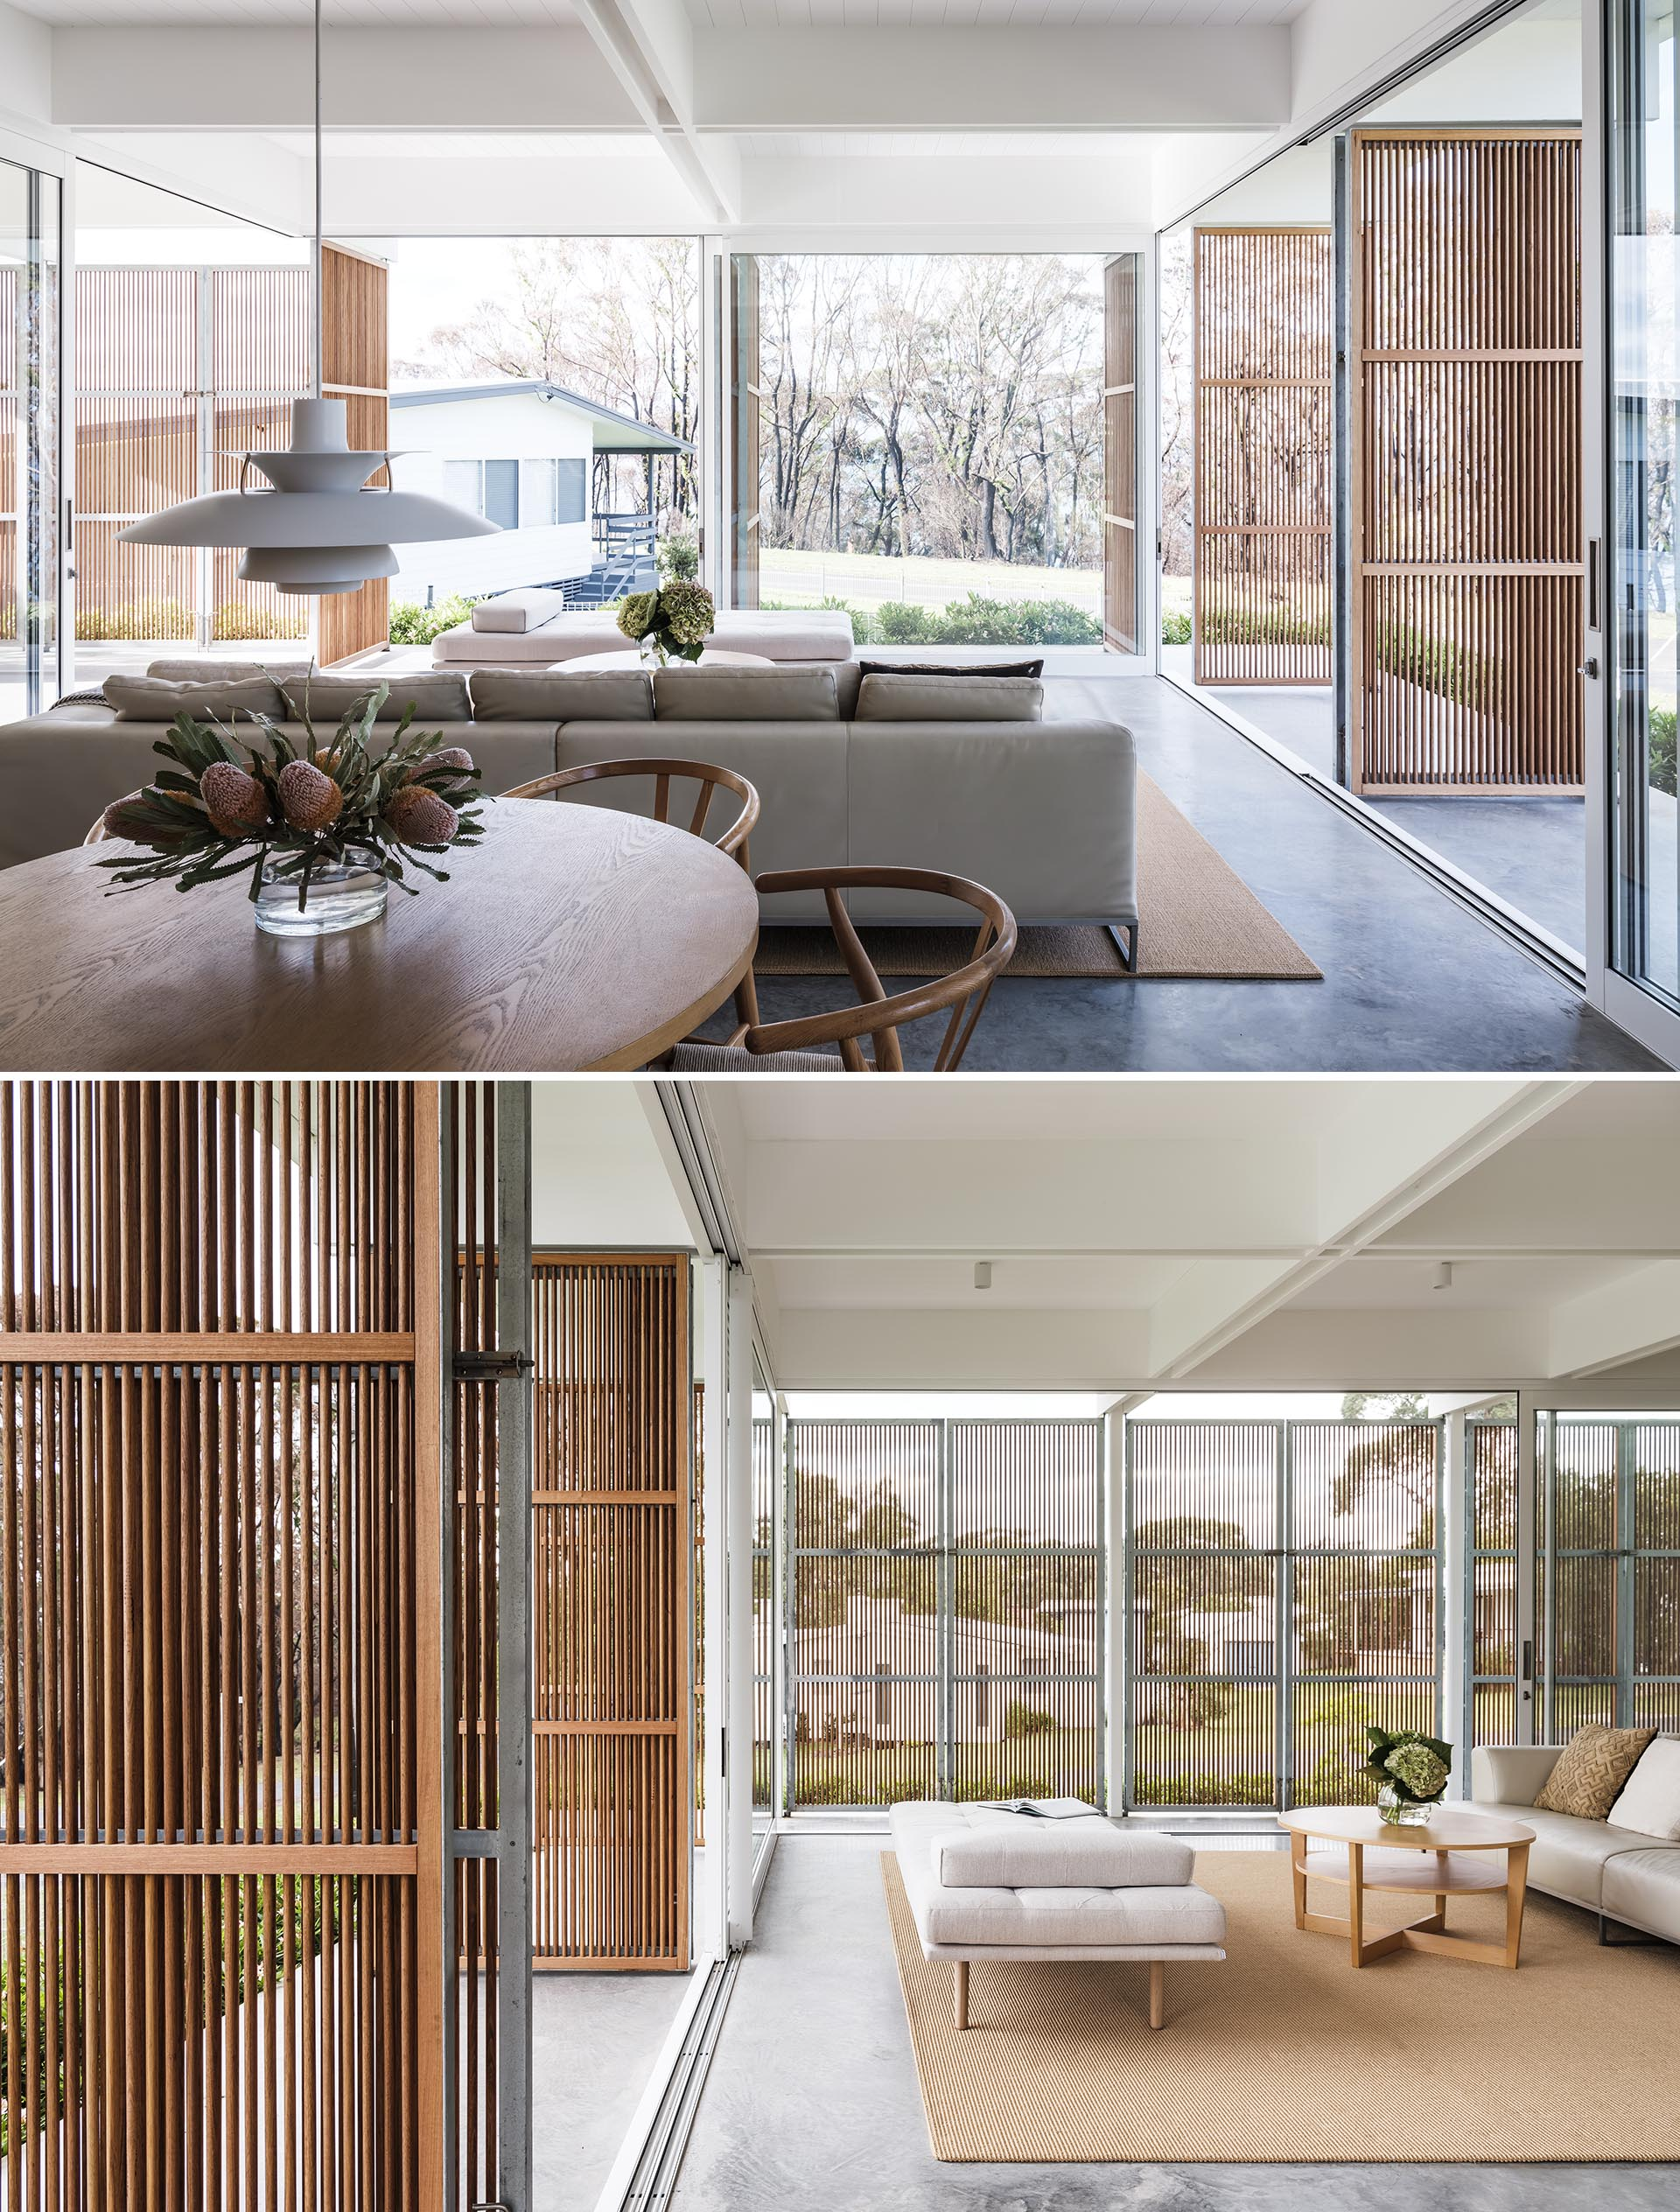 Vertical wood screens can be opened to create a casual living environment.